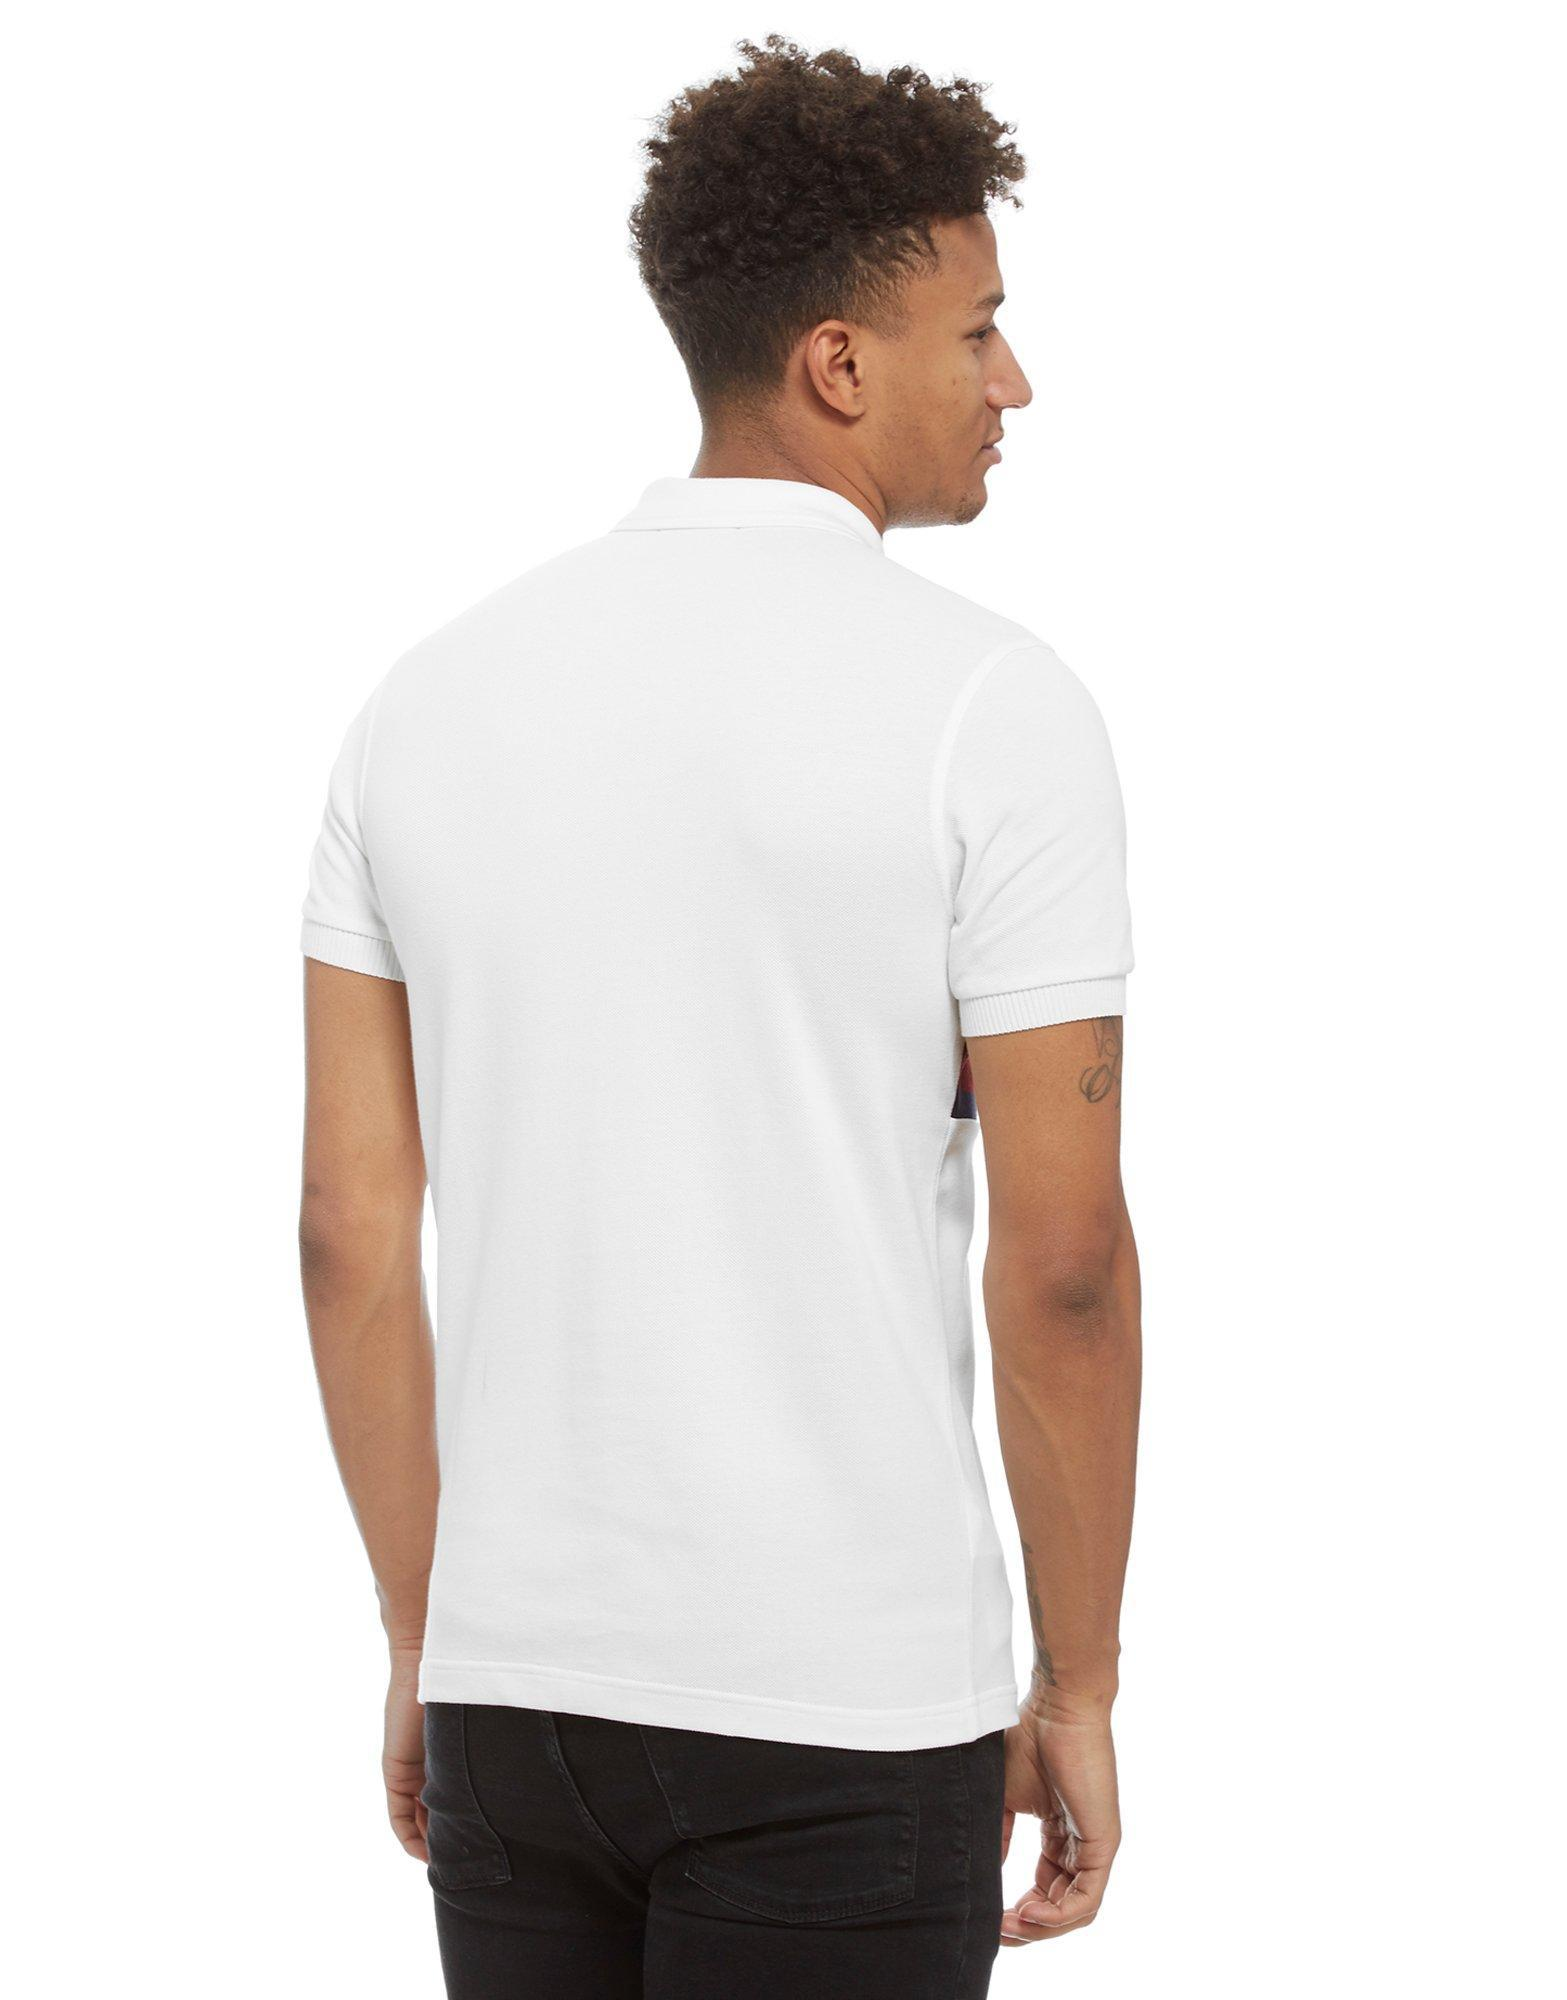 lyst fred perry stripe panel polo shirt in white for men. Black Bedroom Furniture Sets. Home Design Ideas